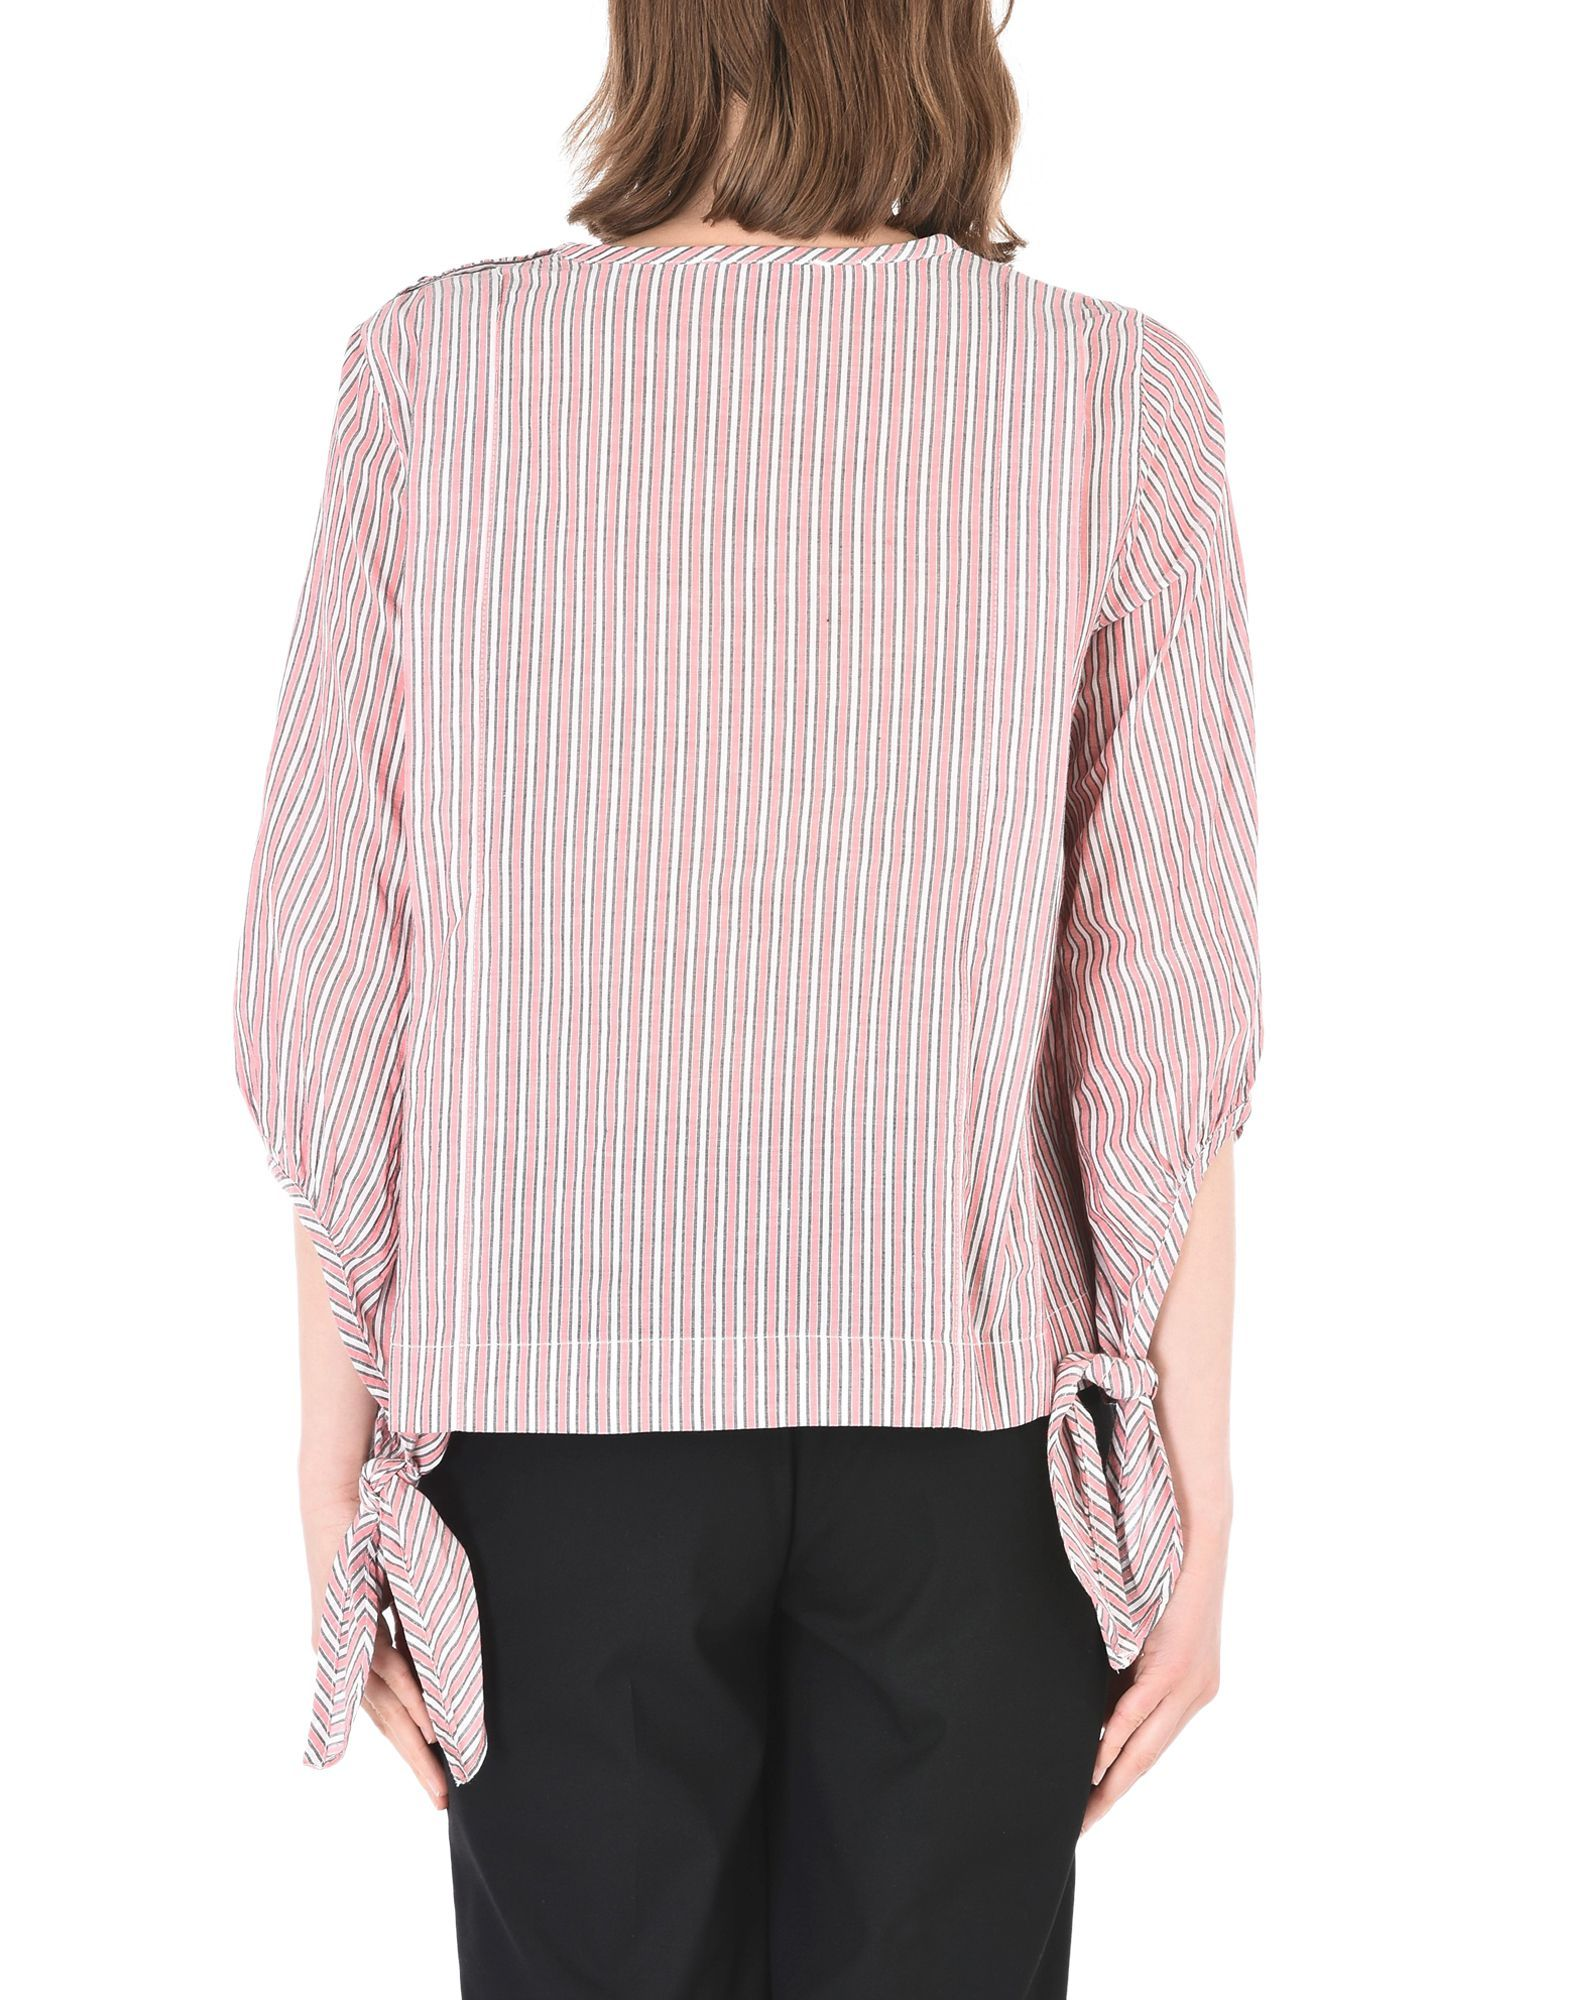 SHIRTS Maison Scotch Pink Woman Cotton